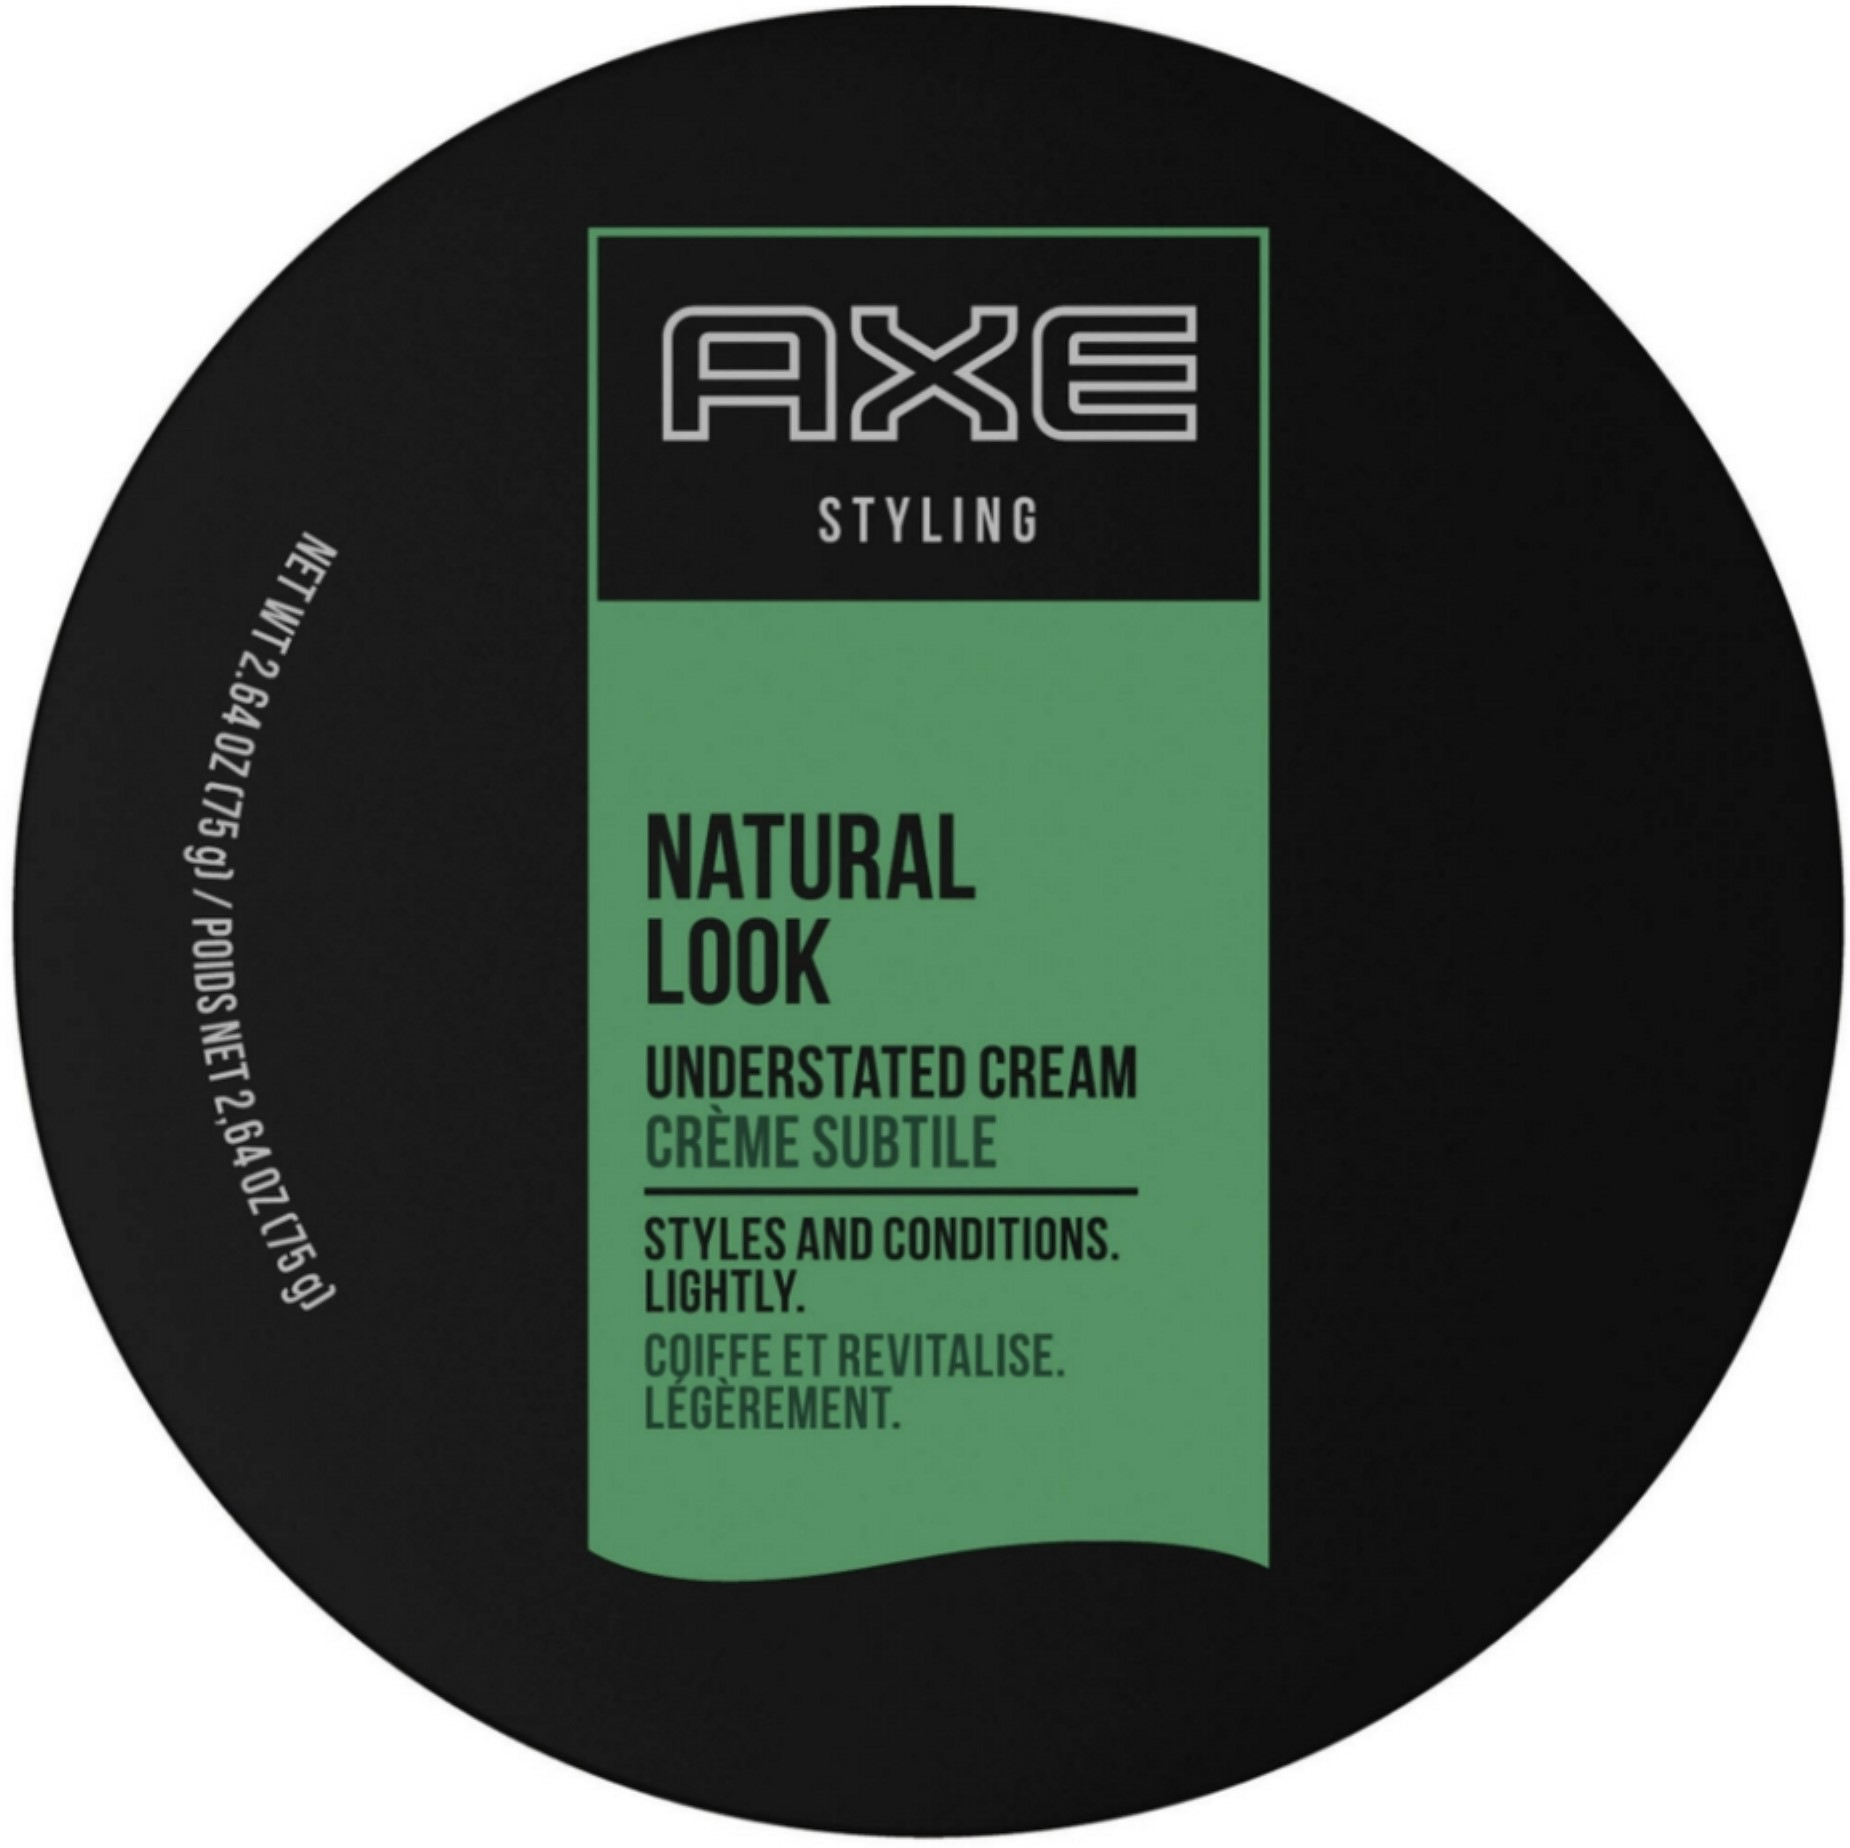 Axe Understated Natural Look Hair Styling Cream 2.64 oz